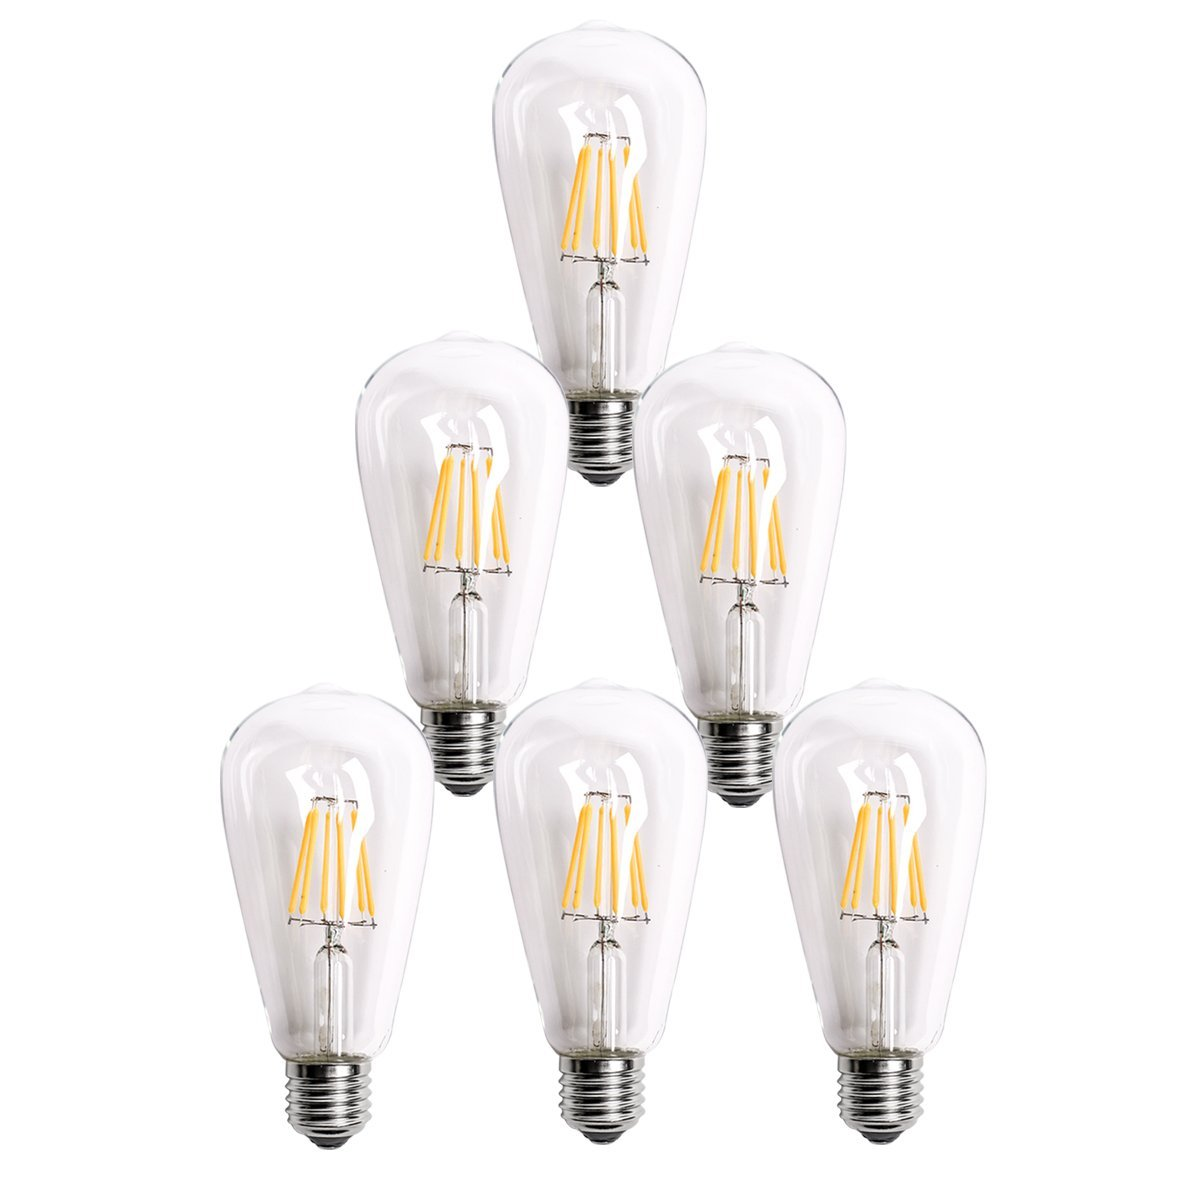 Homestia LED Clear ST64 6W 110V Warm Lighting Filament High Operating Life Antique Edison Style Bulb(6 pack)